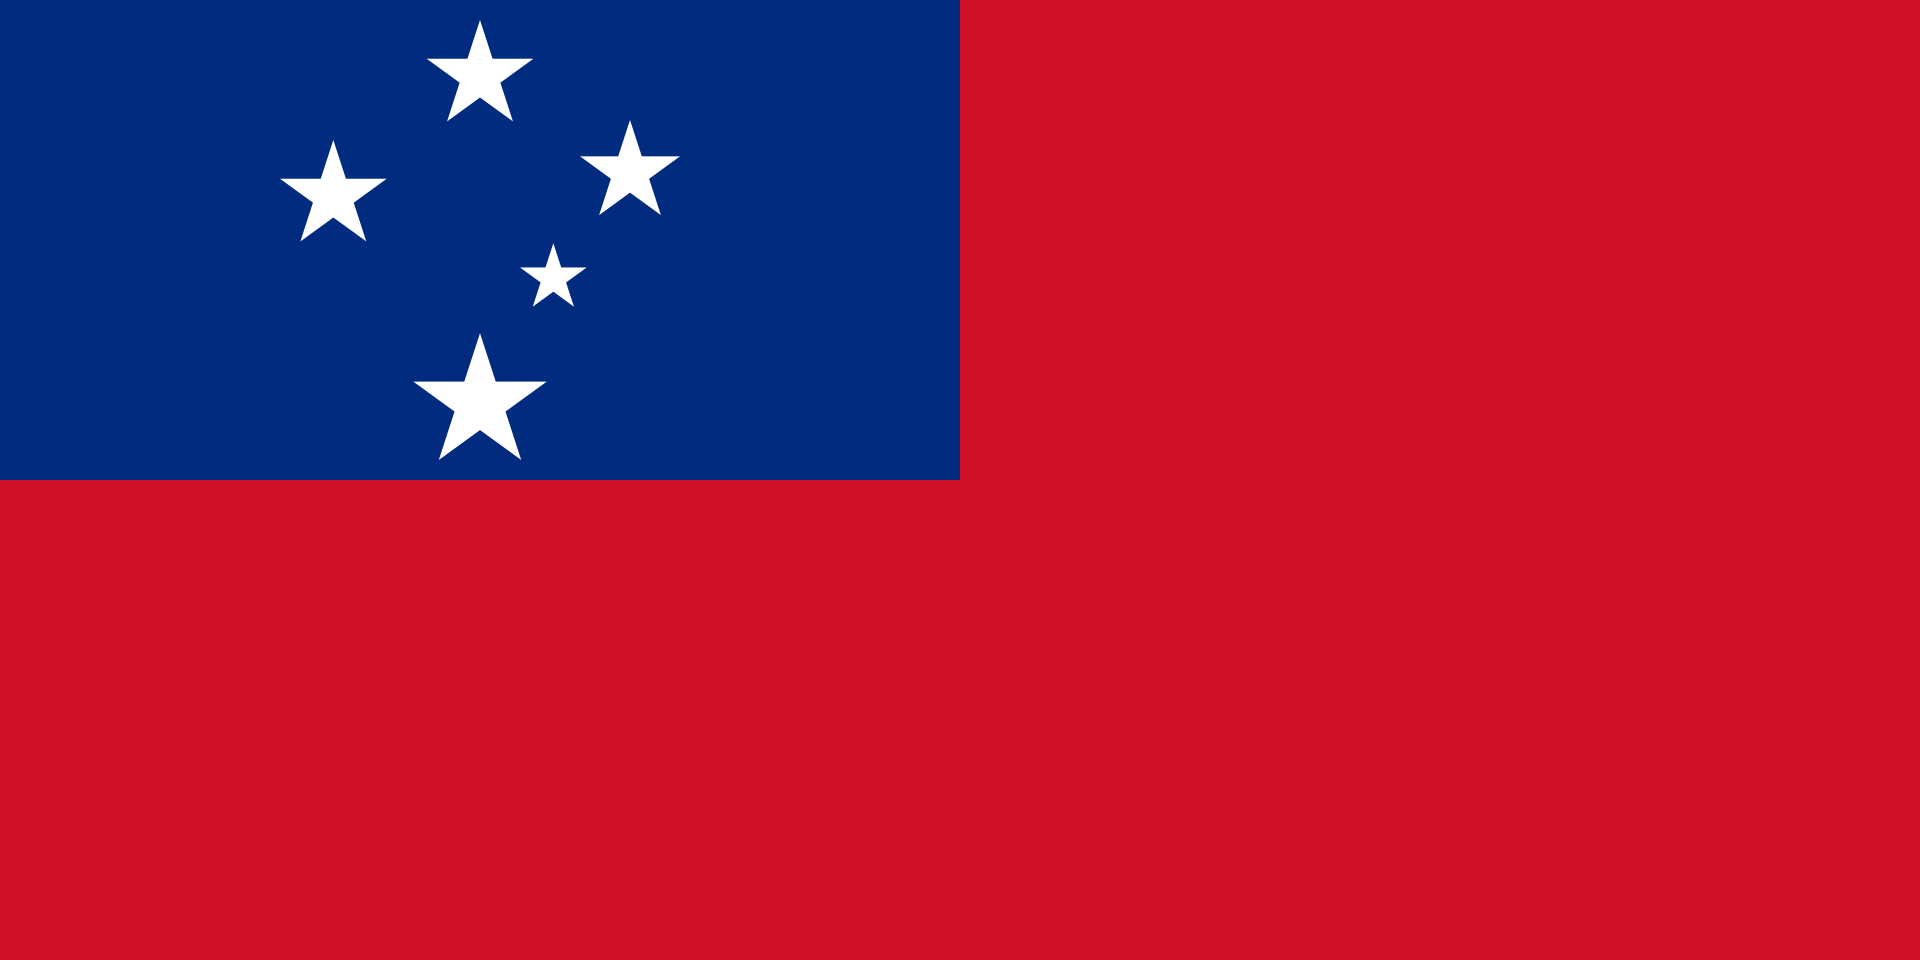 The flag of Samoa.